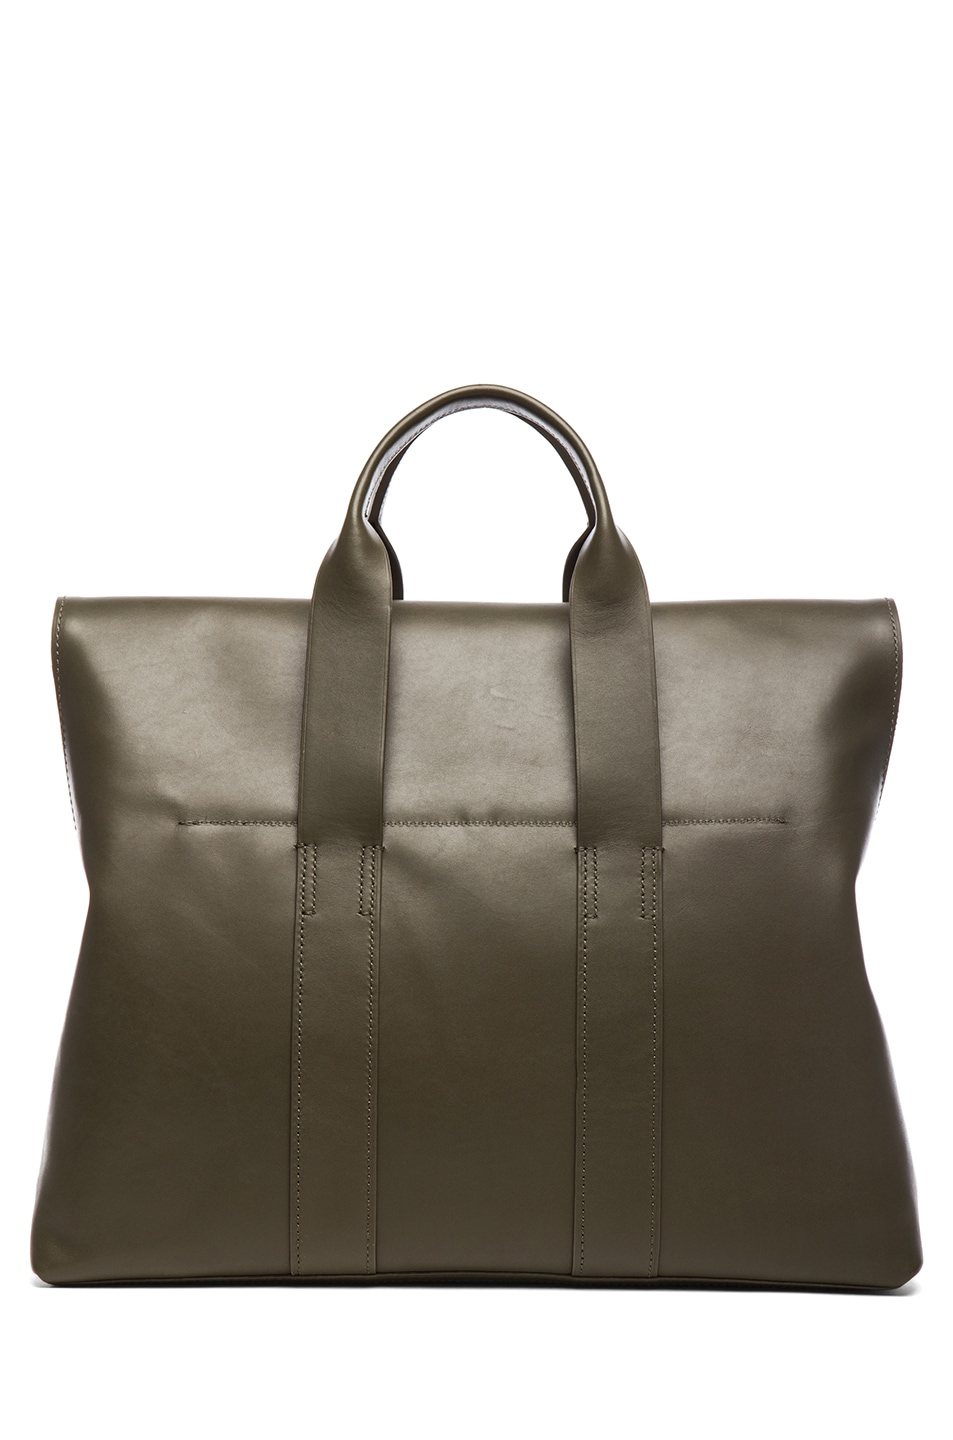 Image 2 of 3.1 phillip lim 31 Hour Bag in Dark Olive